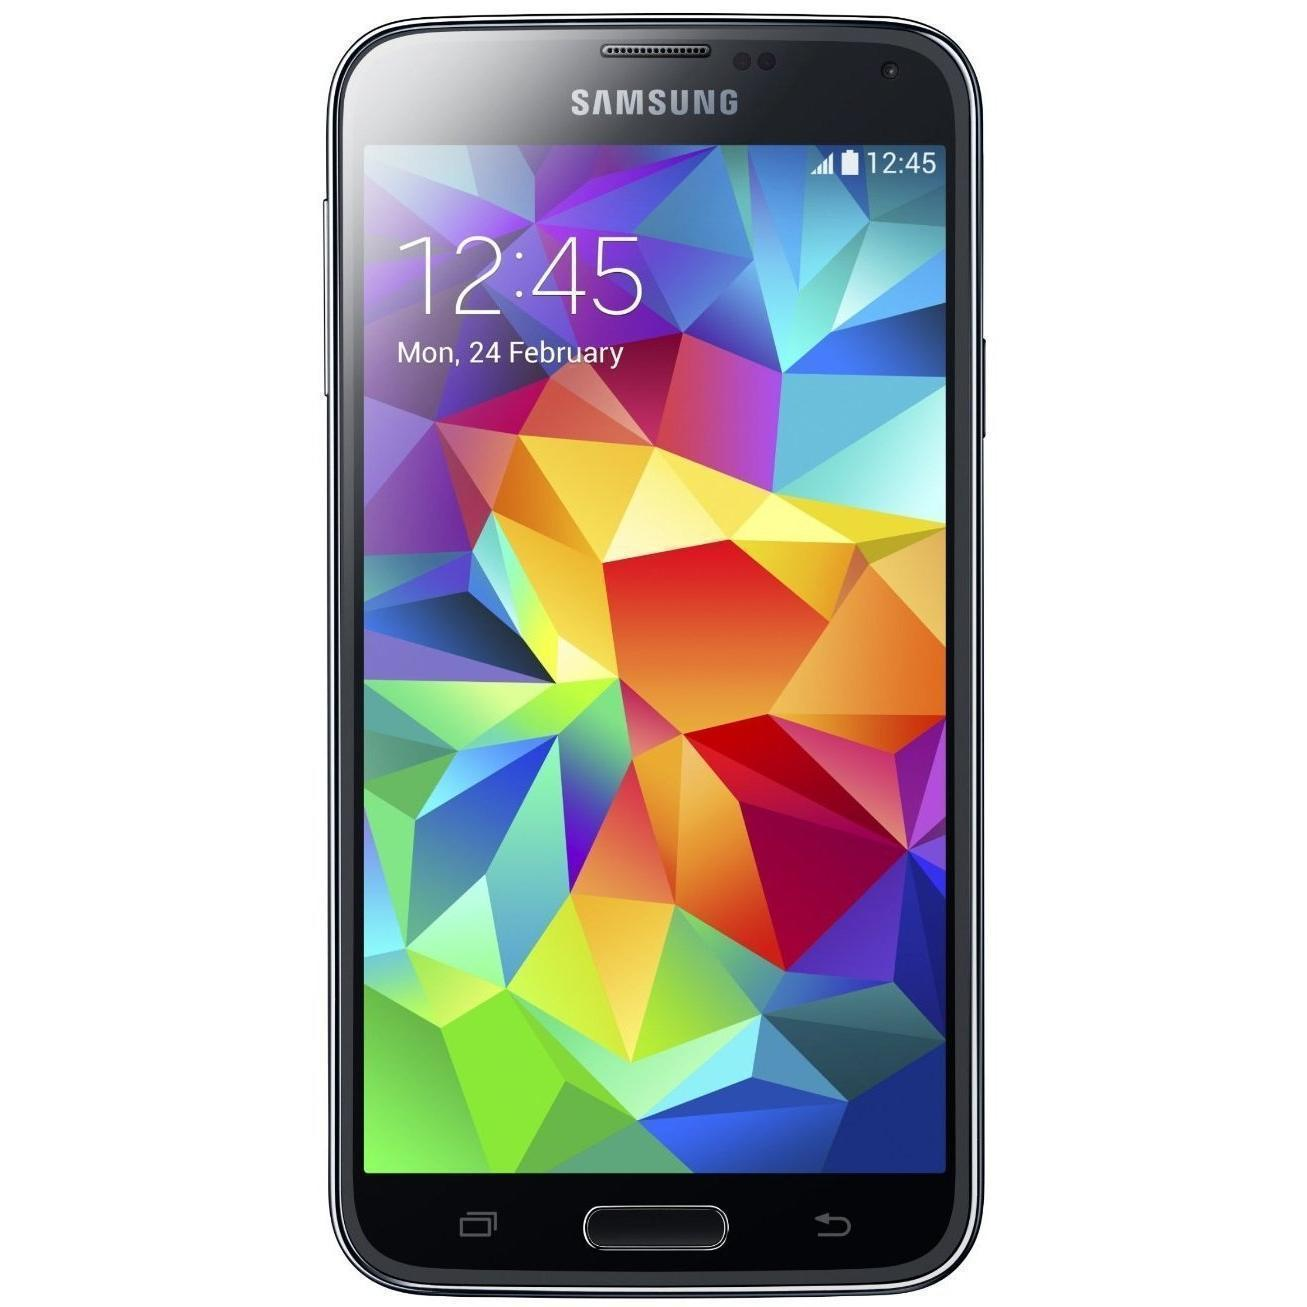 Samsung Galaxy S5 16 Go 4G - Noir - Orange